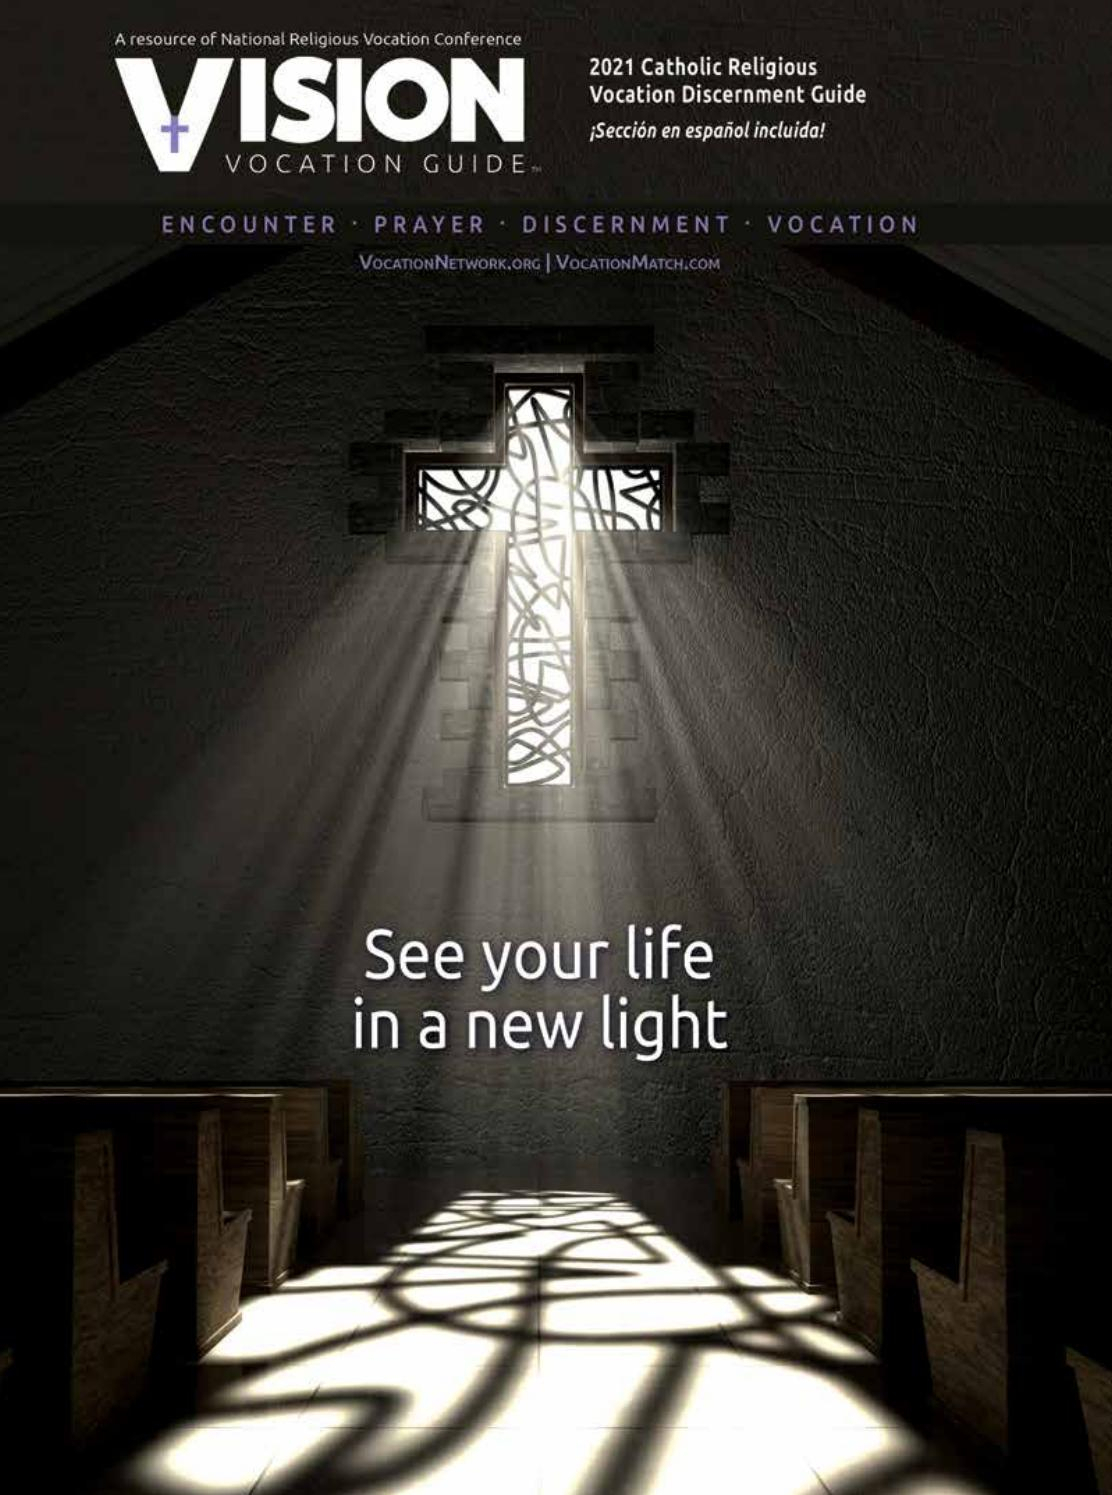 Vision Vocation Guide 2021Vision Vocation Guide - Issuu intended for Daily Mass Intercessions 2021